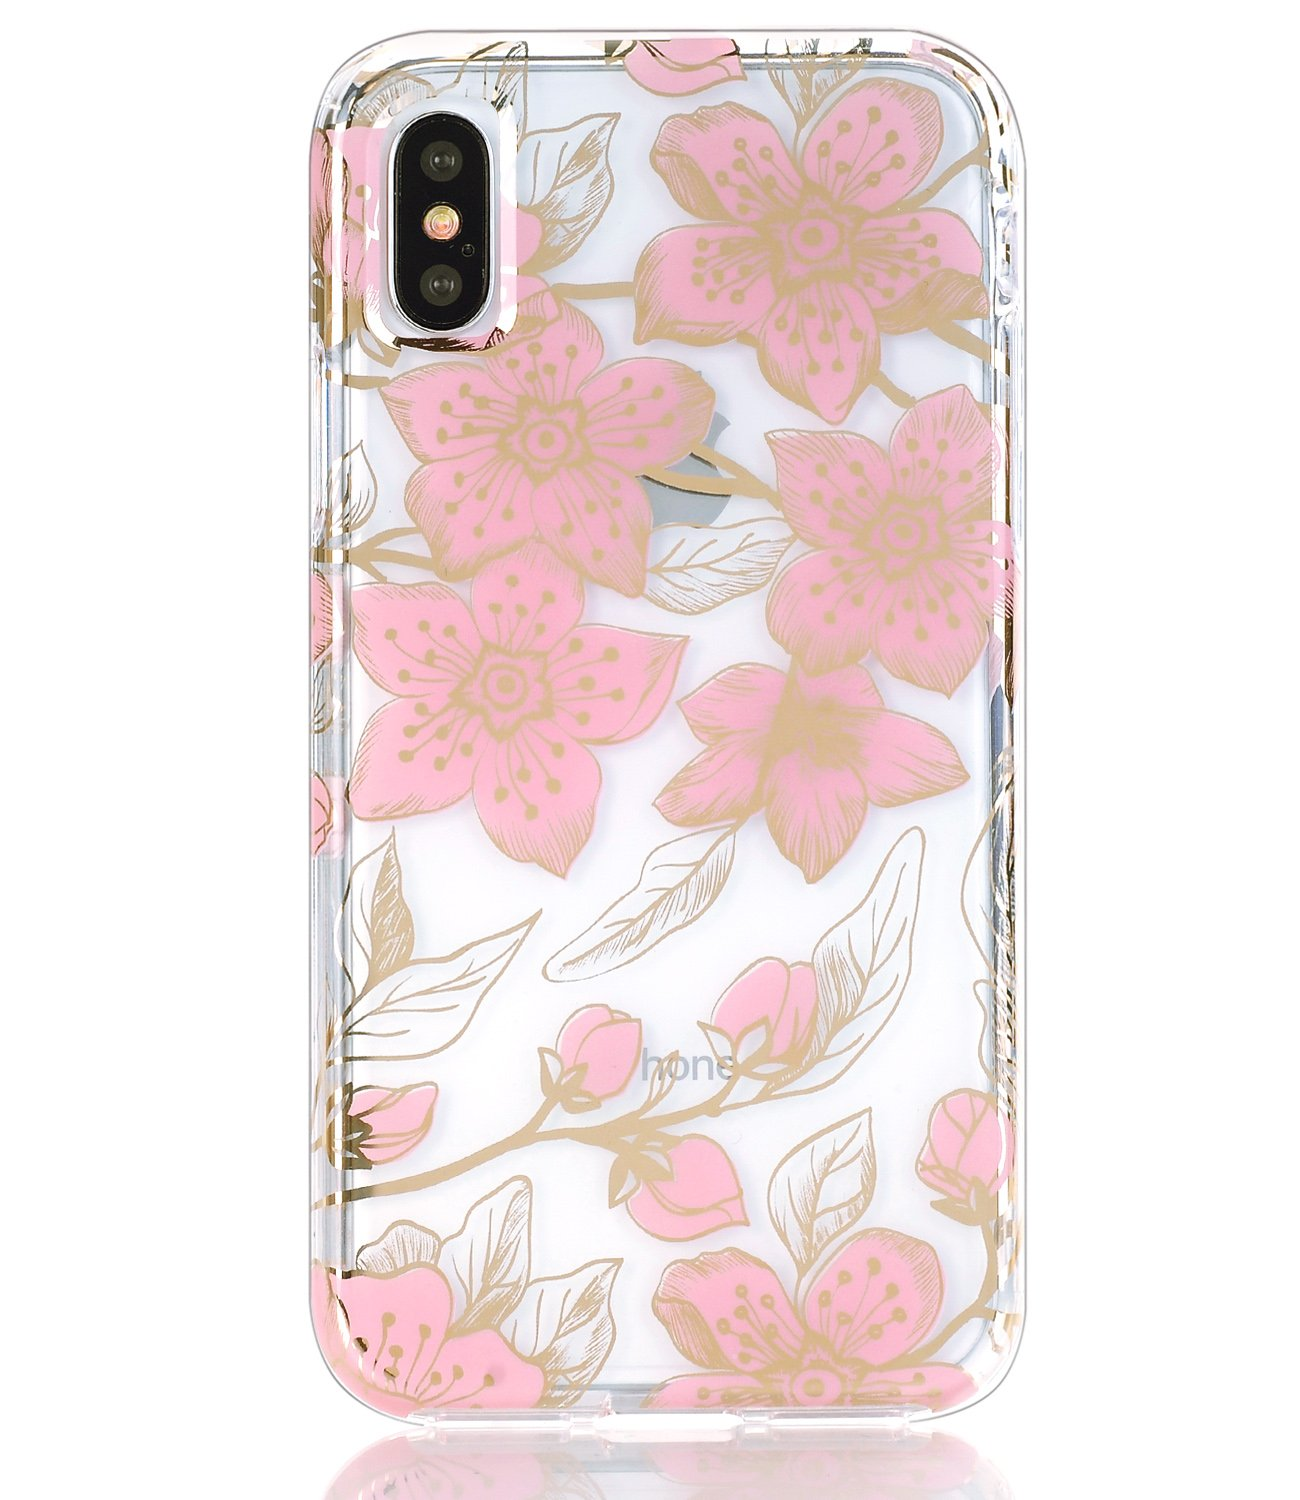 BAISRKE iPhone Xs Case Hard PC Back Soft TPU Bumper Raised Edge Drop Protection Cover for Apple iPhone X//iPhone Xs 5.8 iPhone X Case Clear with Shiny Gold Marble Fusion